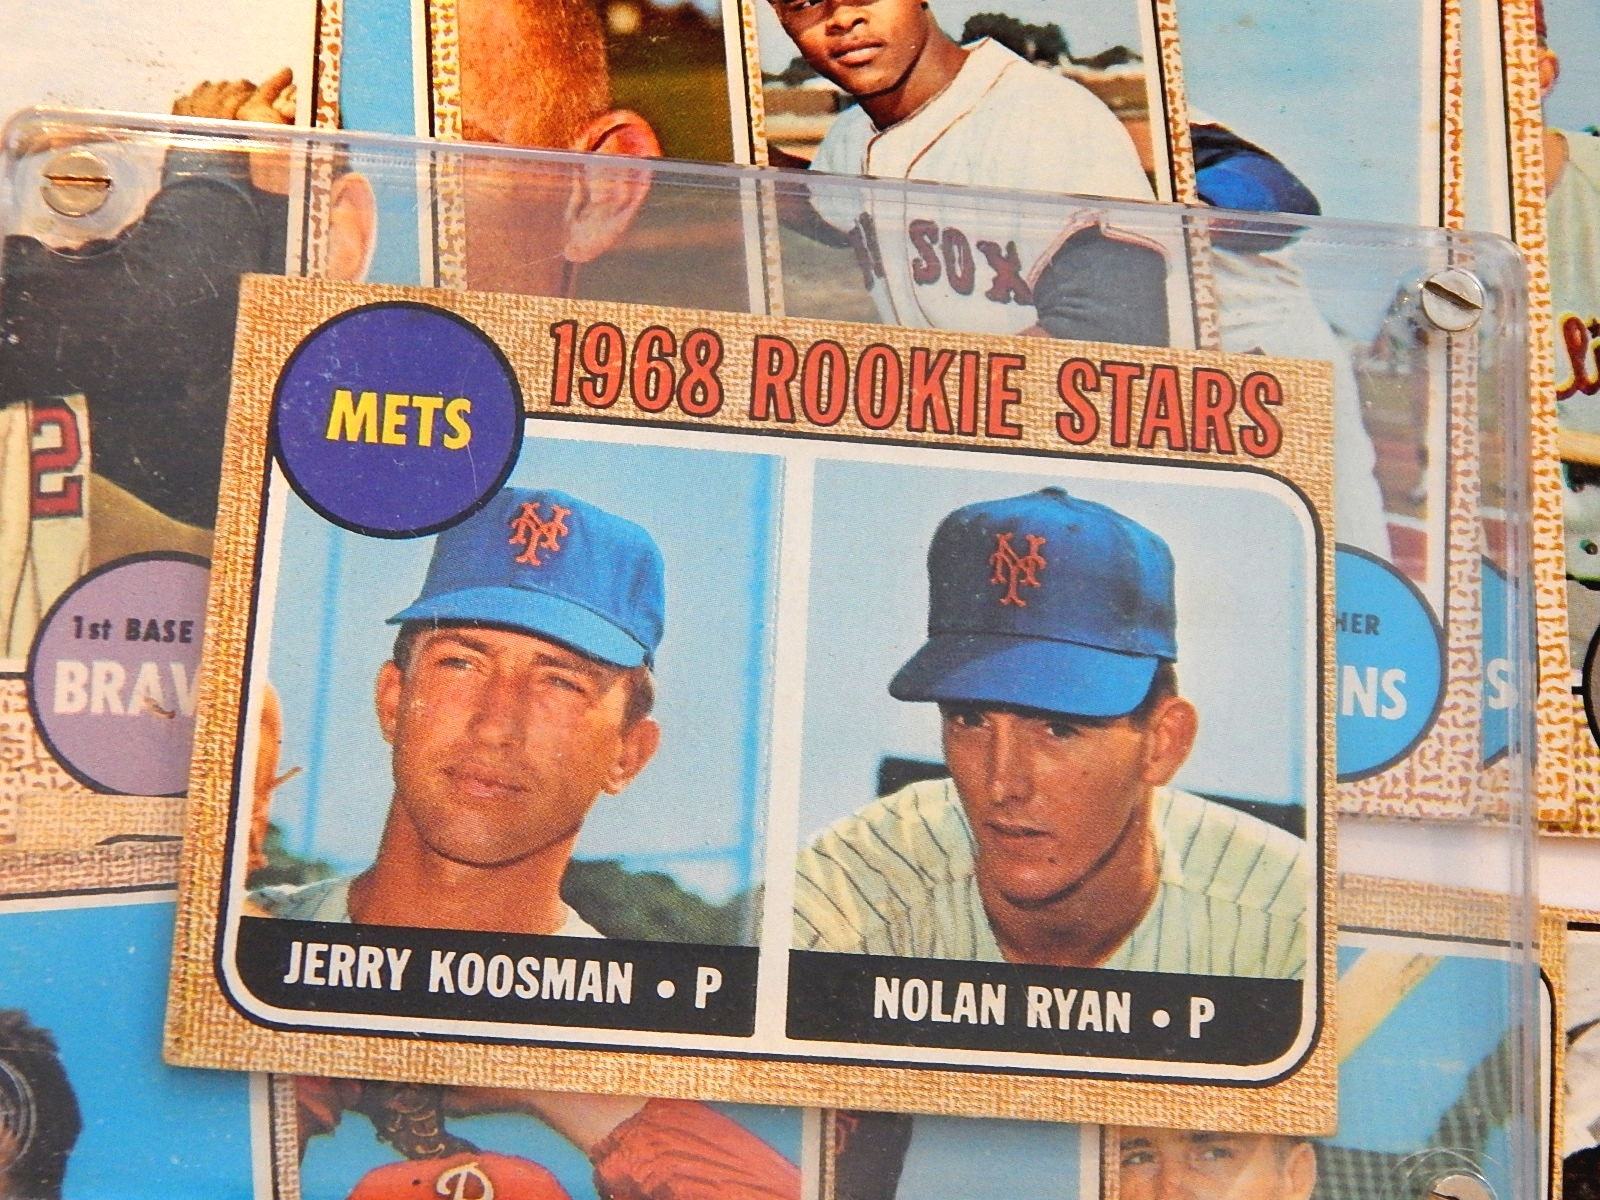 1968 Topps Nolan Ryan Rookie Card #177 with Over 100 1968 Topps Baseball Cards